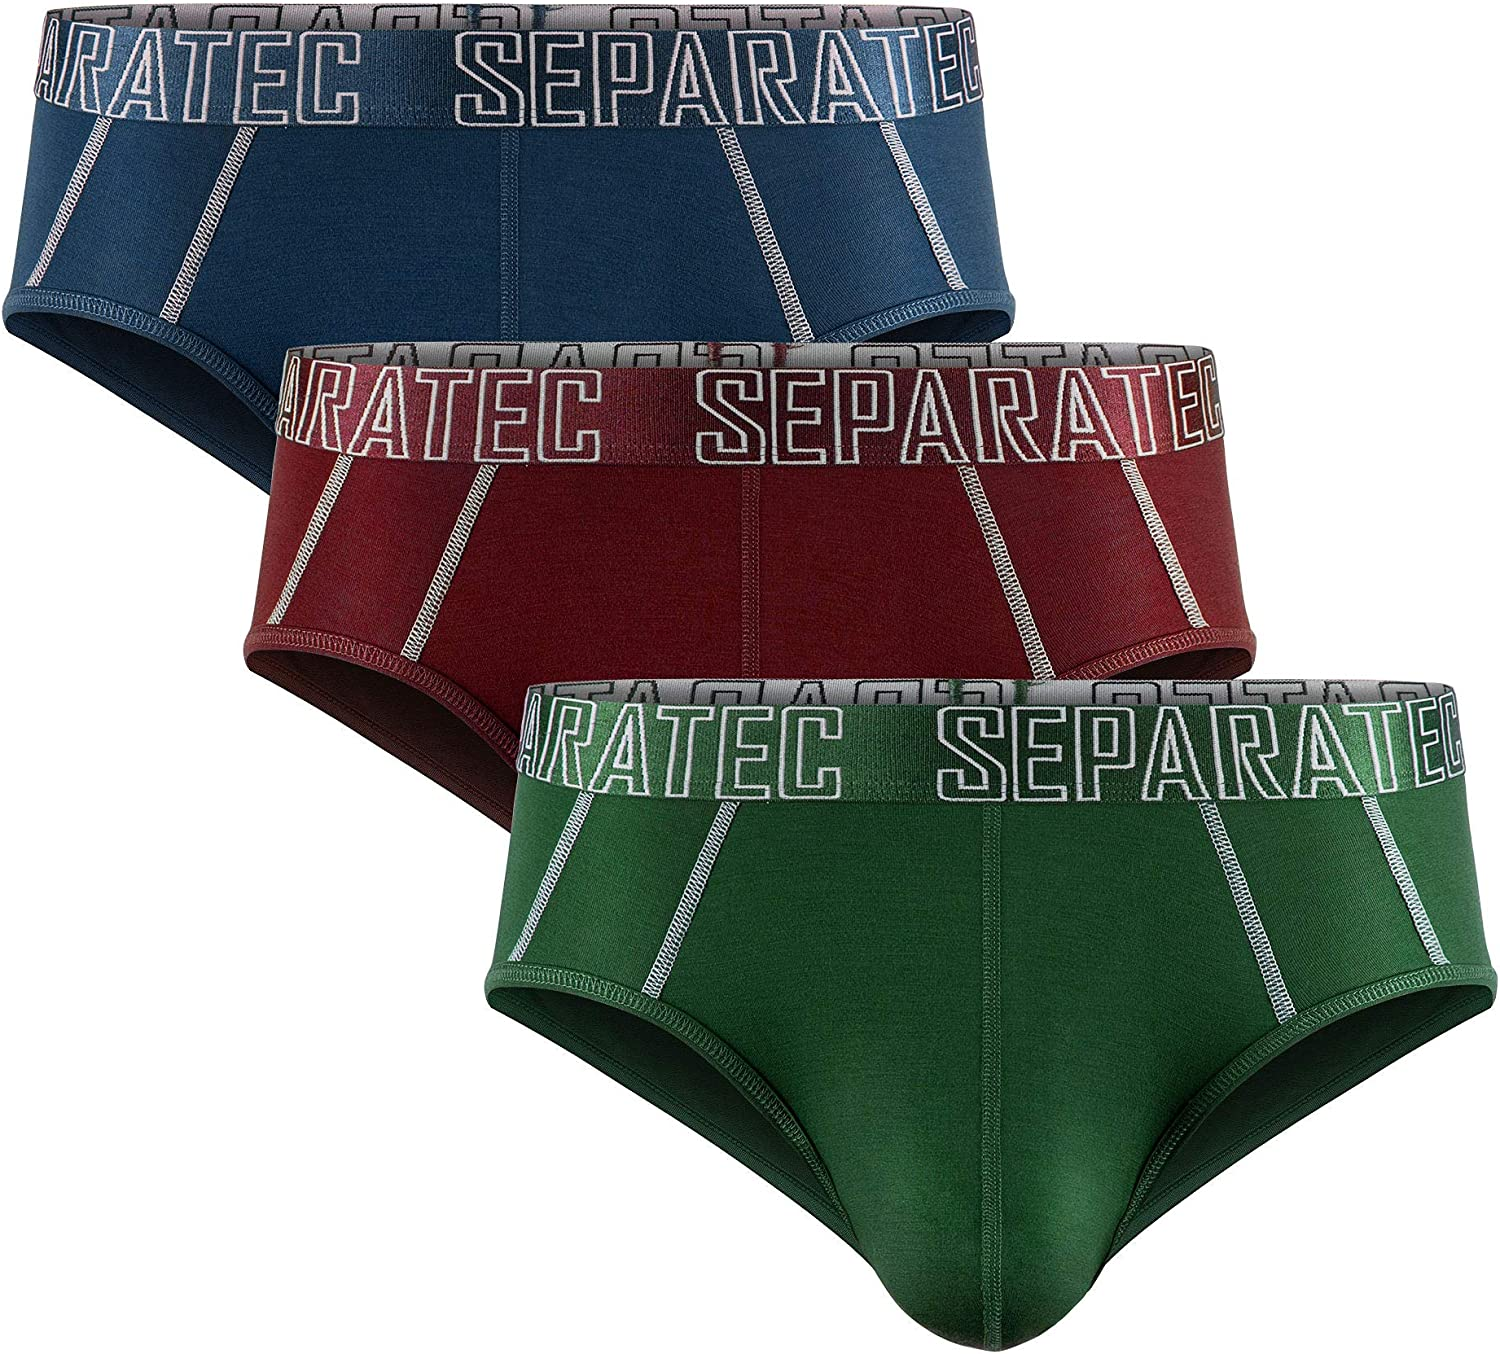 Separatec Men's Underwear 3 Pack Basic Bamboo Rayon Soft Breathable Dual Pouch Briefs